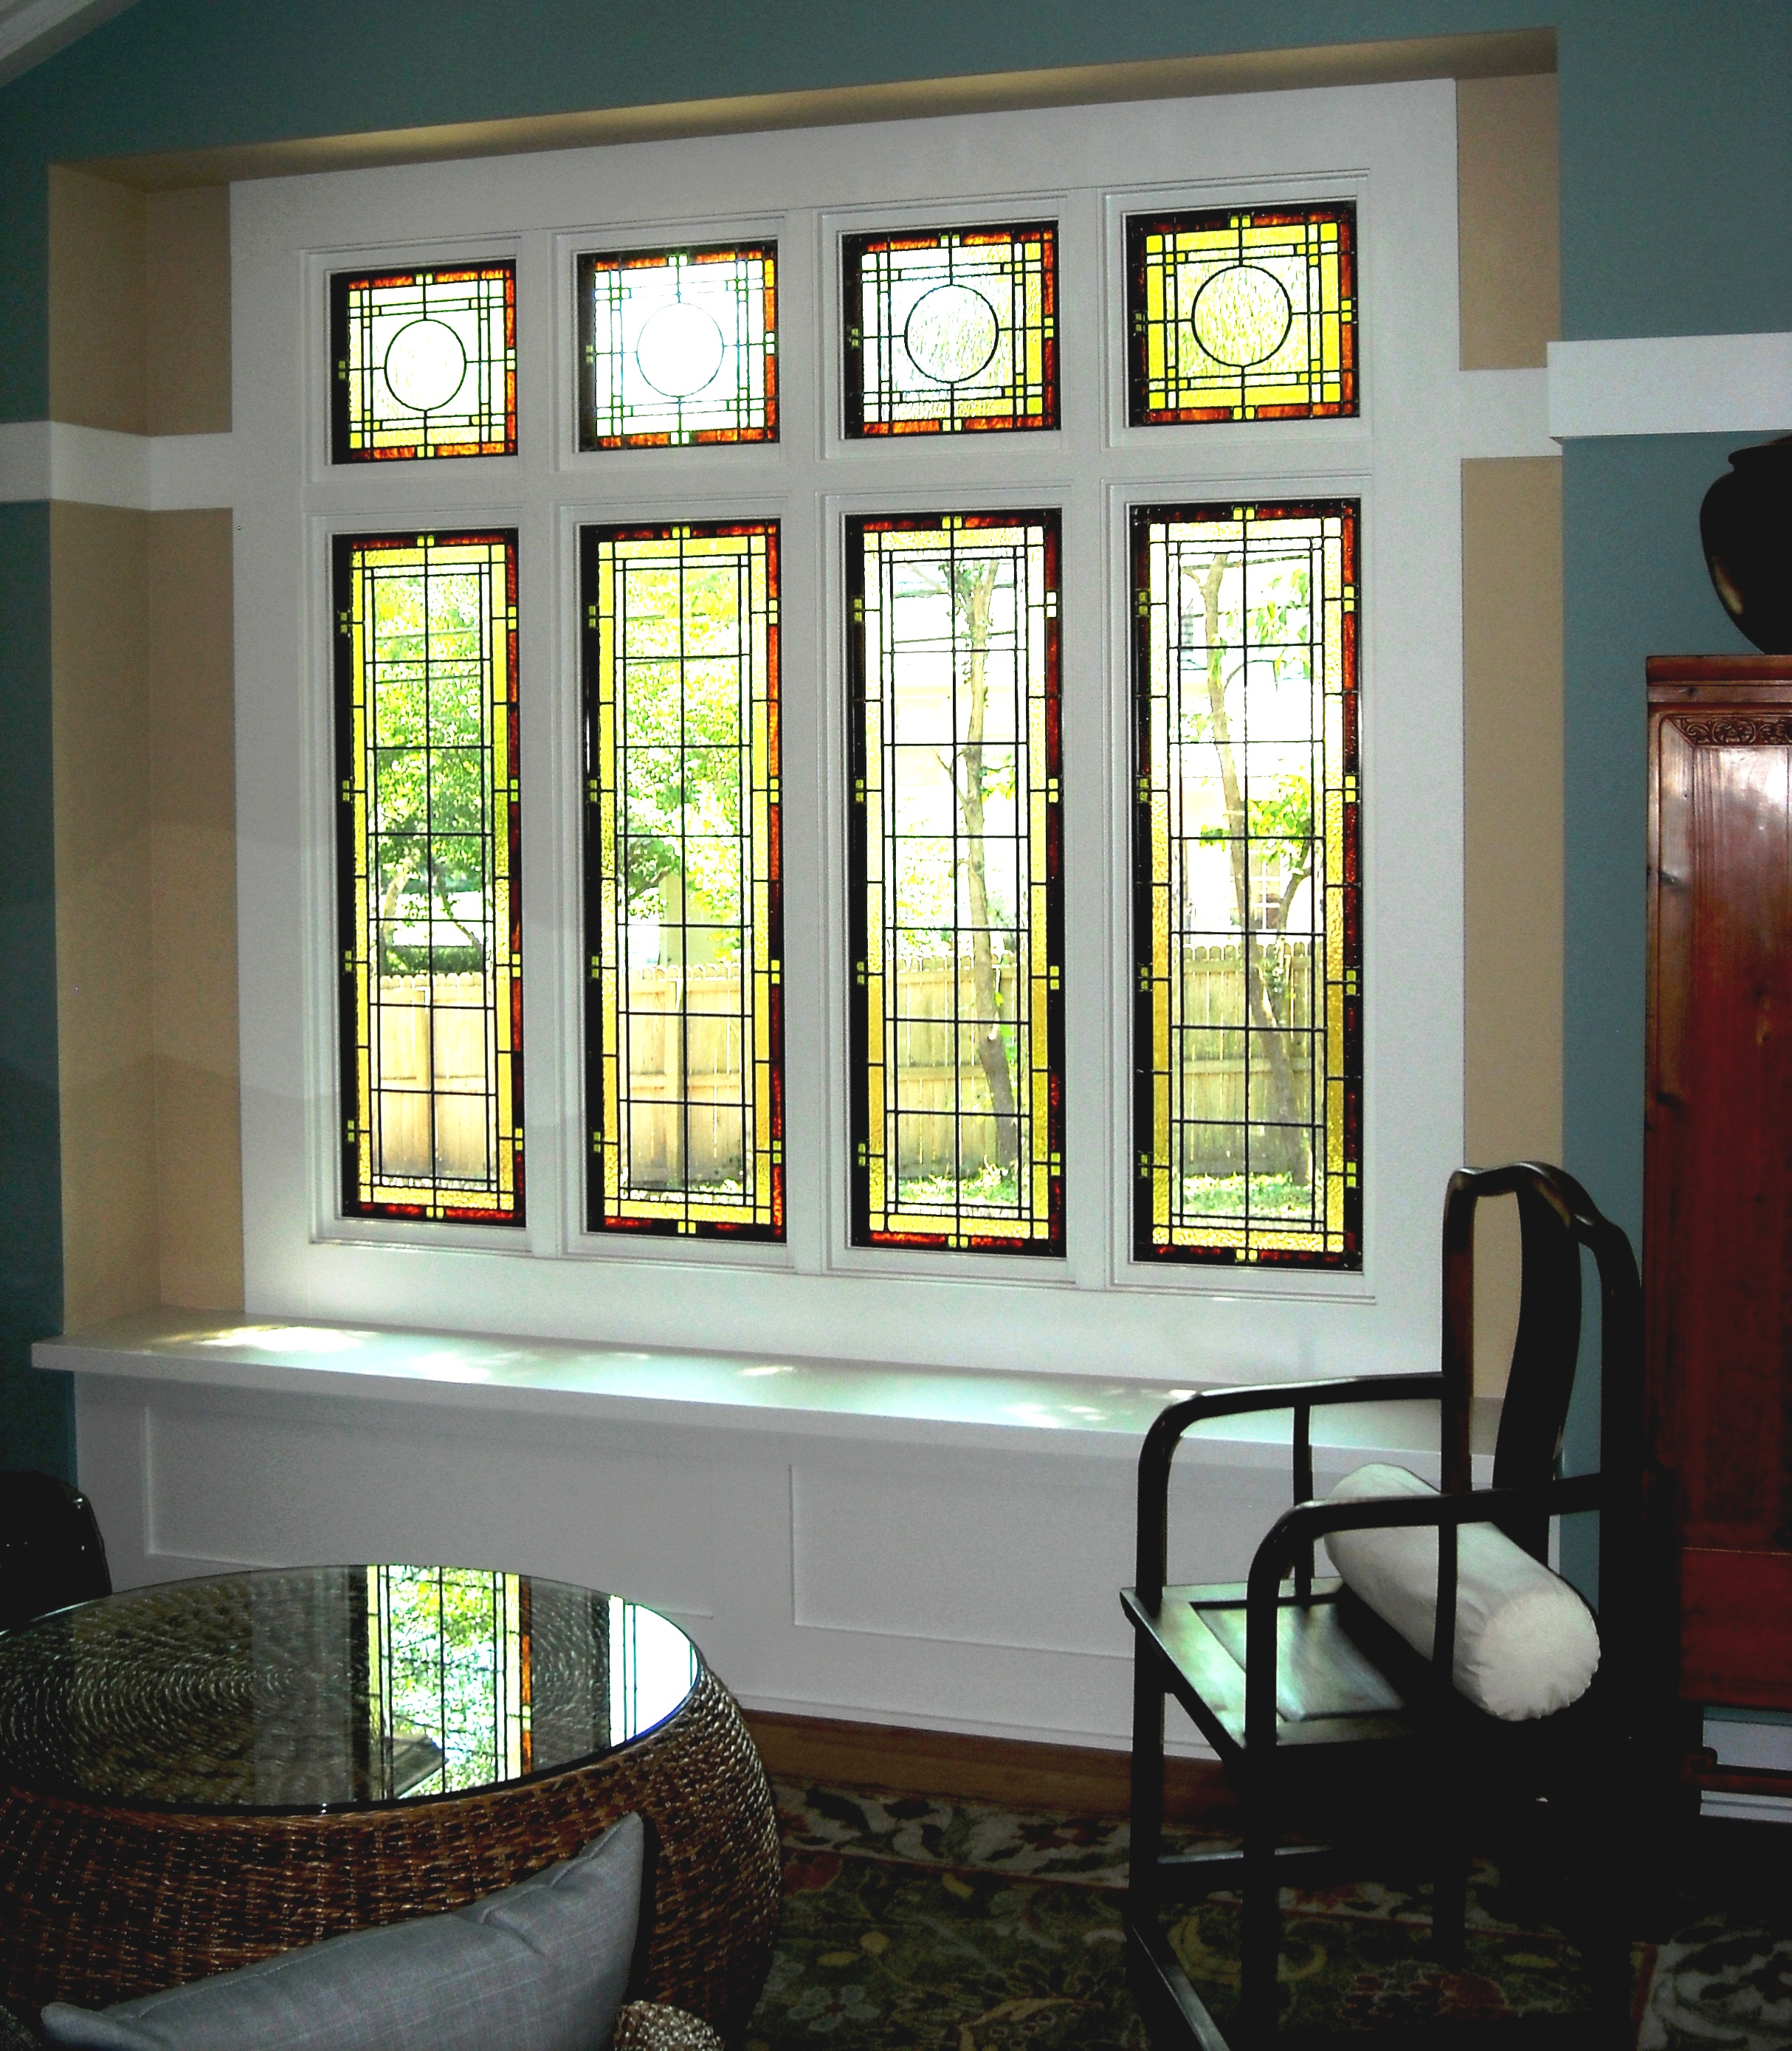 Advantages and disadvantages of stained glass windows for for House window design